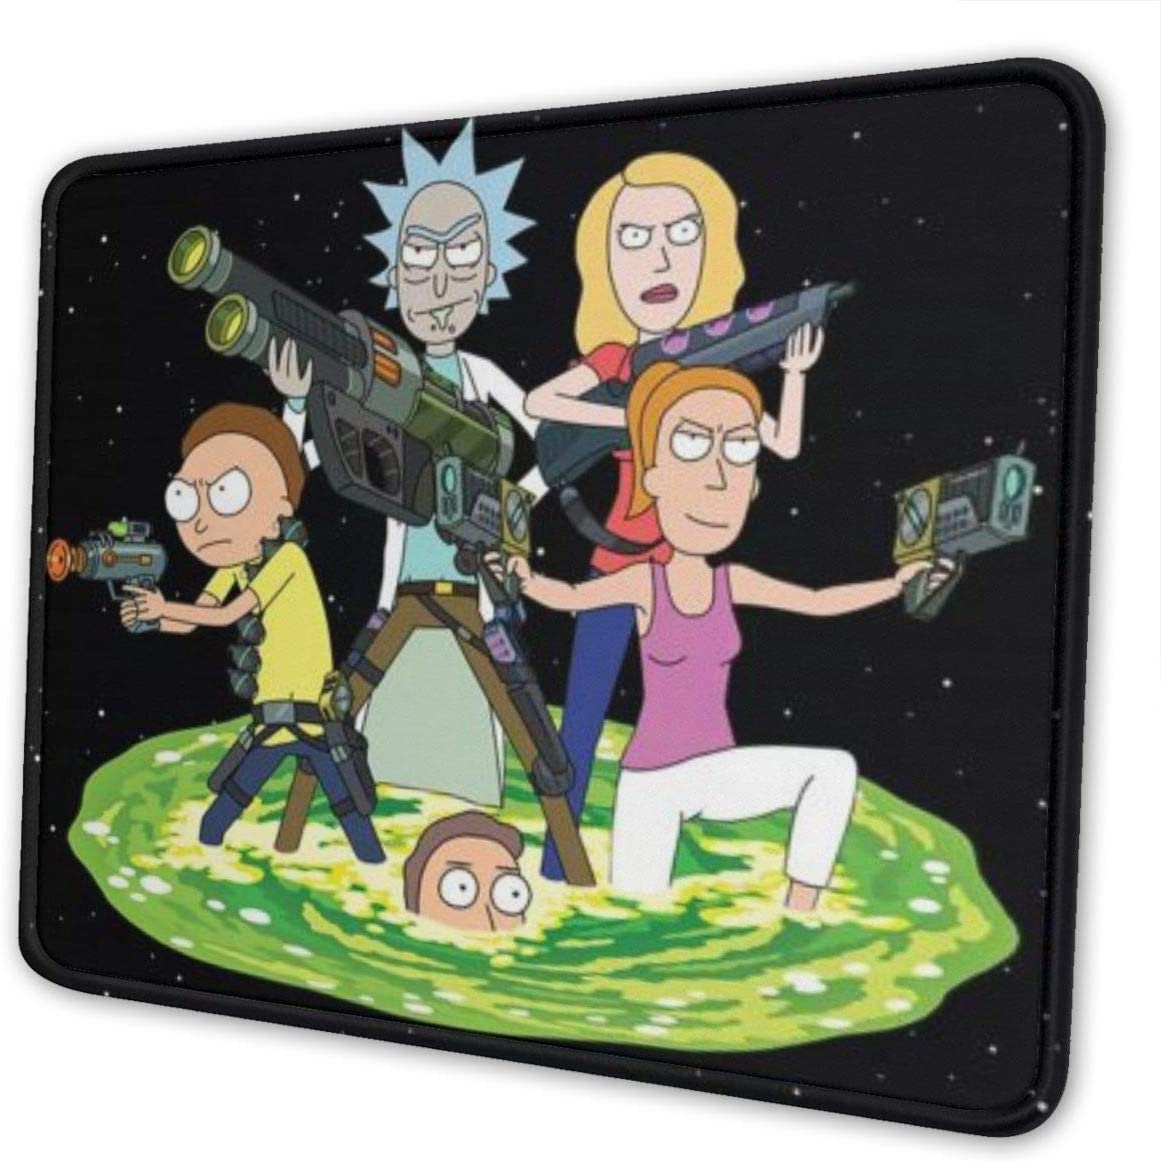 Anime Game Rick /& Morty Mouse Pad Extended Computer Pad Non-Slip Rubber and Durable Stitched Edges for Gaming Keyboard Laptop Mouse Pad 7 X 8.6 in